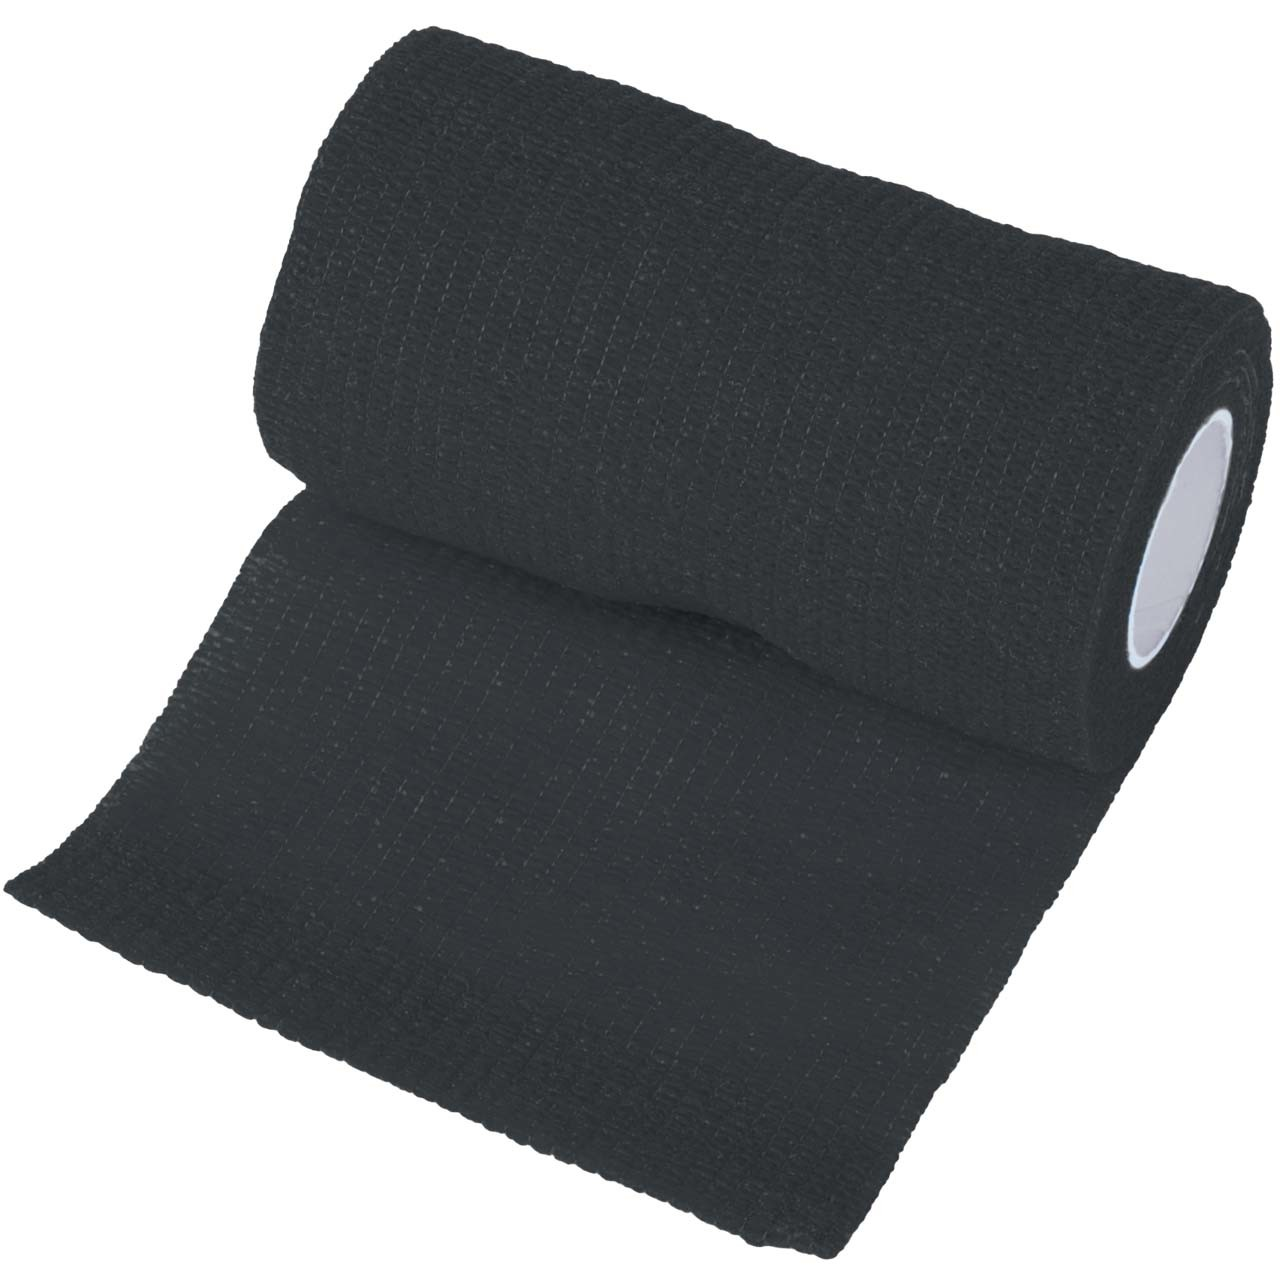 Flex Wrap Bandage